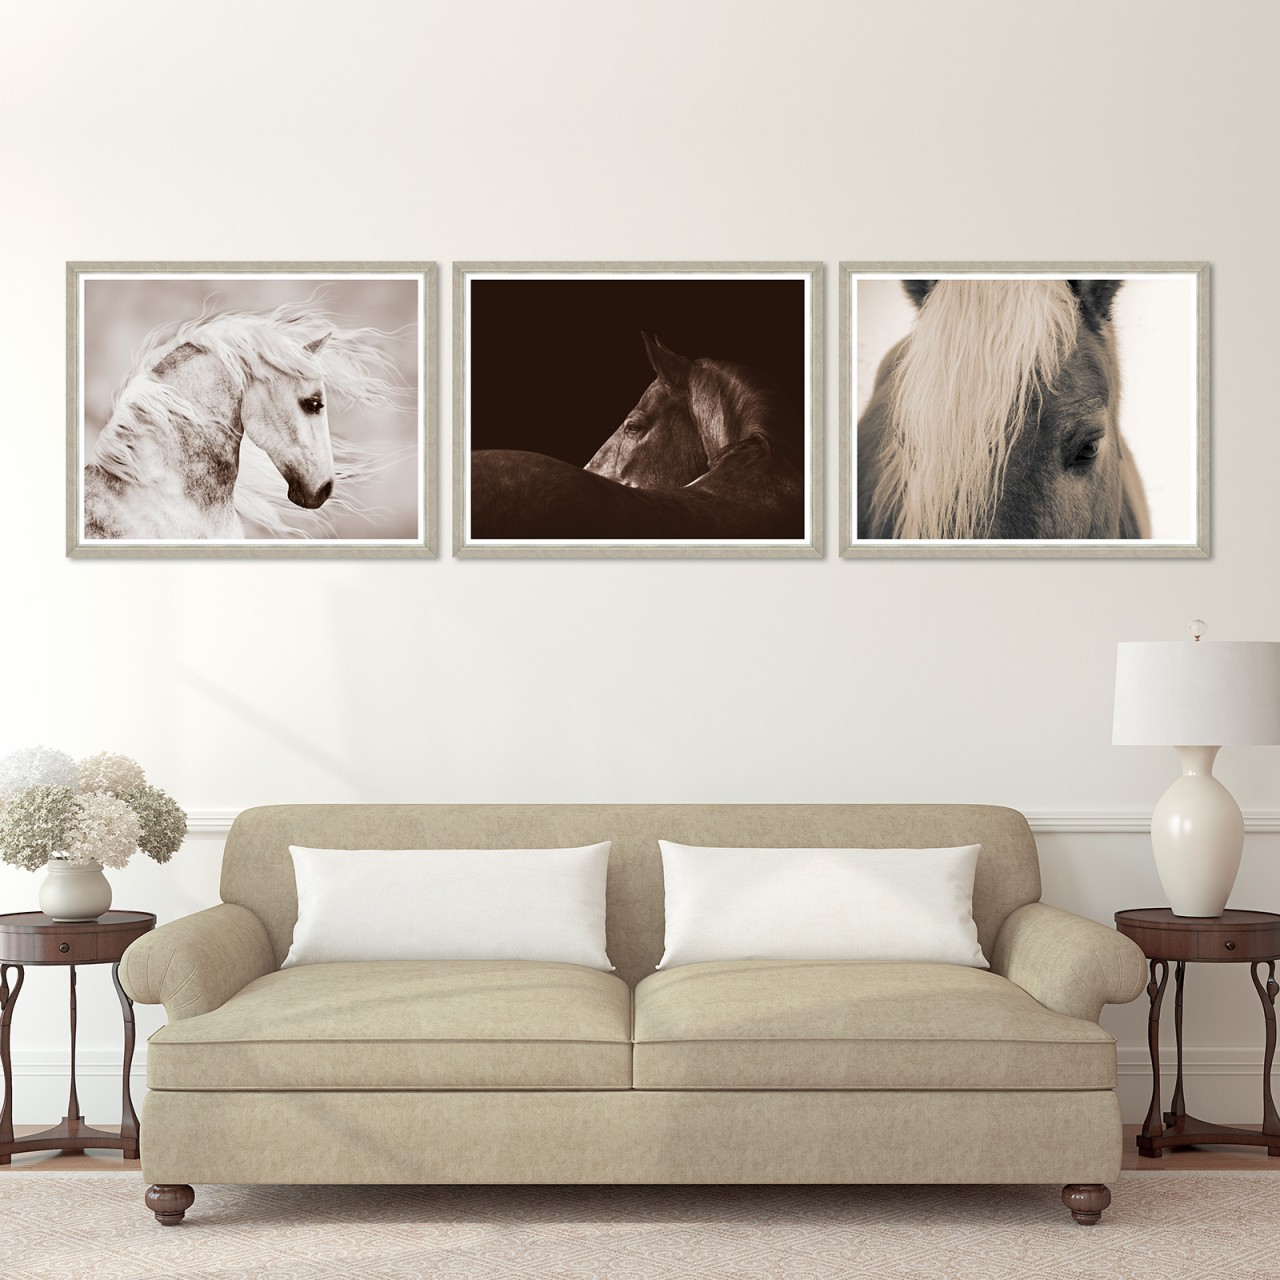 ARABIAN HORSE PORTRAIT Set of 3 Framed art